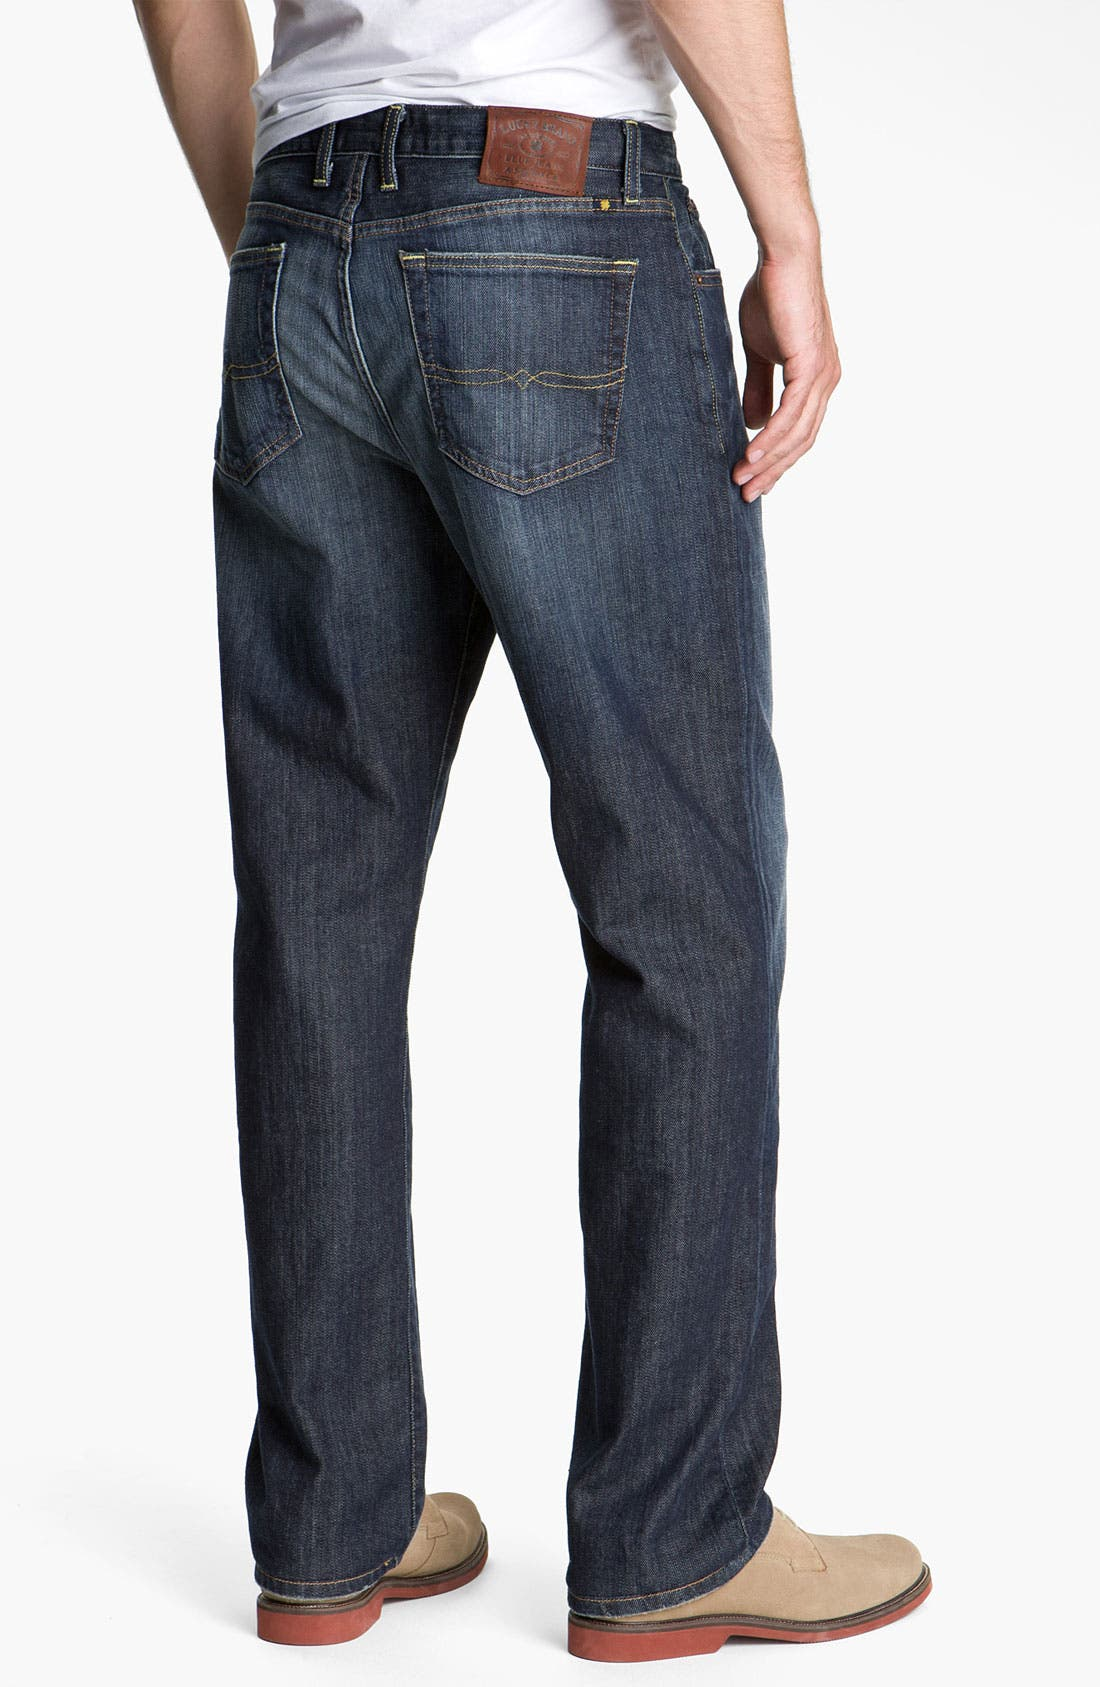 Alternate Image 1 Selected - Lucky Brand '329' Classic Straight Leg Jeans (Ol' Lipservice)